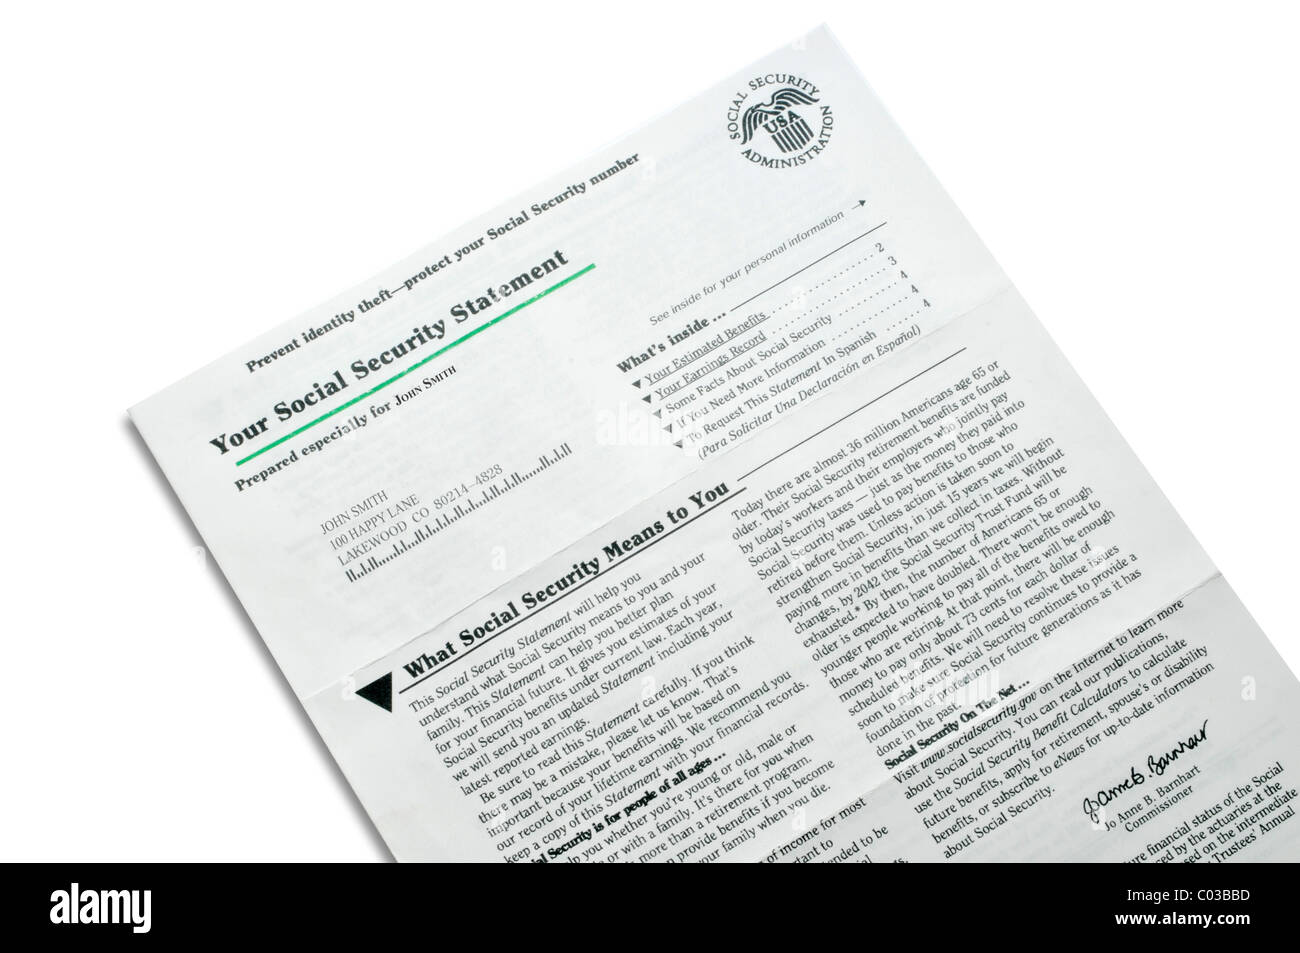 Social security statement stock photo 34495537 alamy social security statement thecheapjerseys Gallery